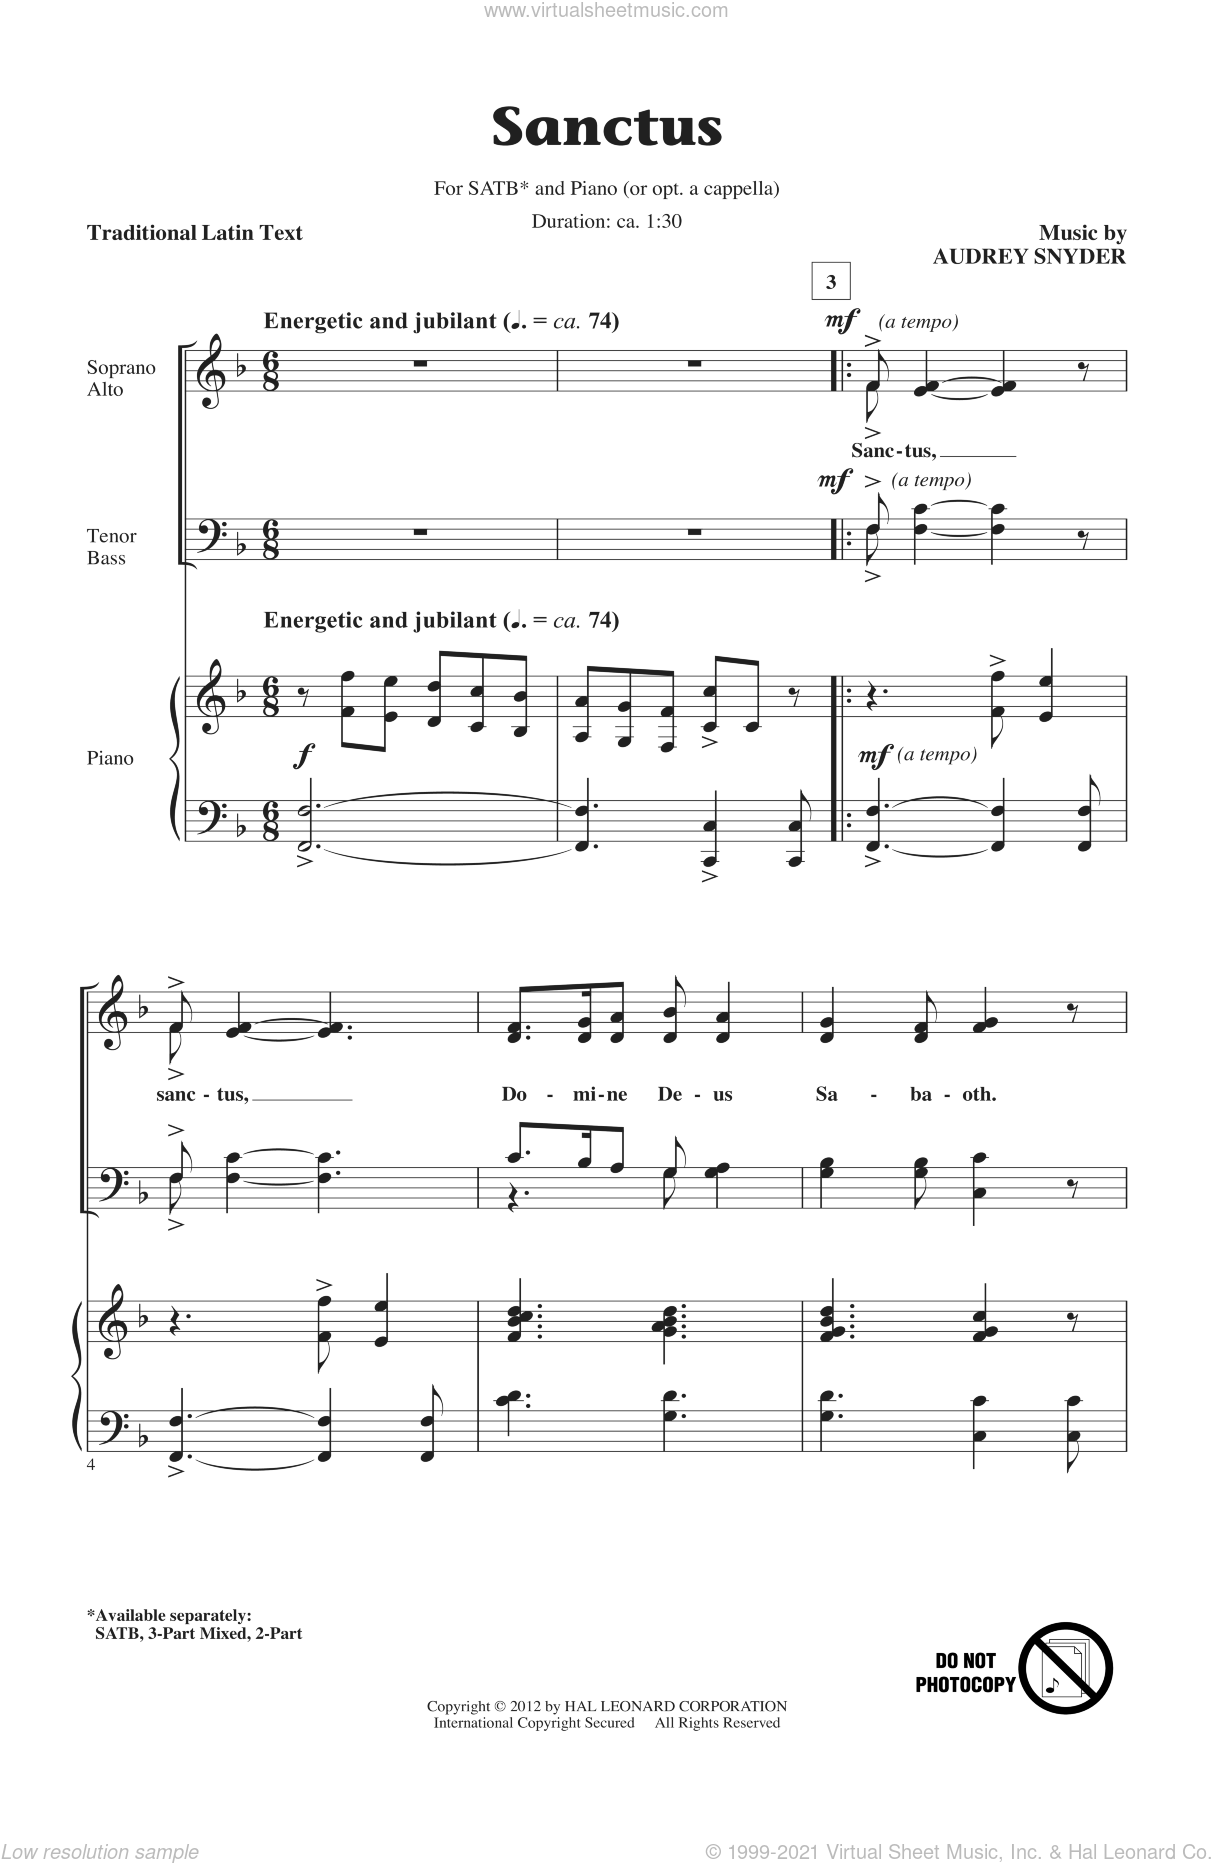 Sanctus sheet music for choir and piano (SATB) by Audrey Snyder